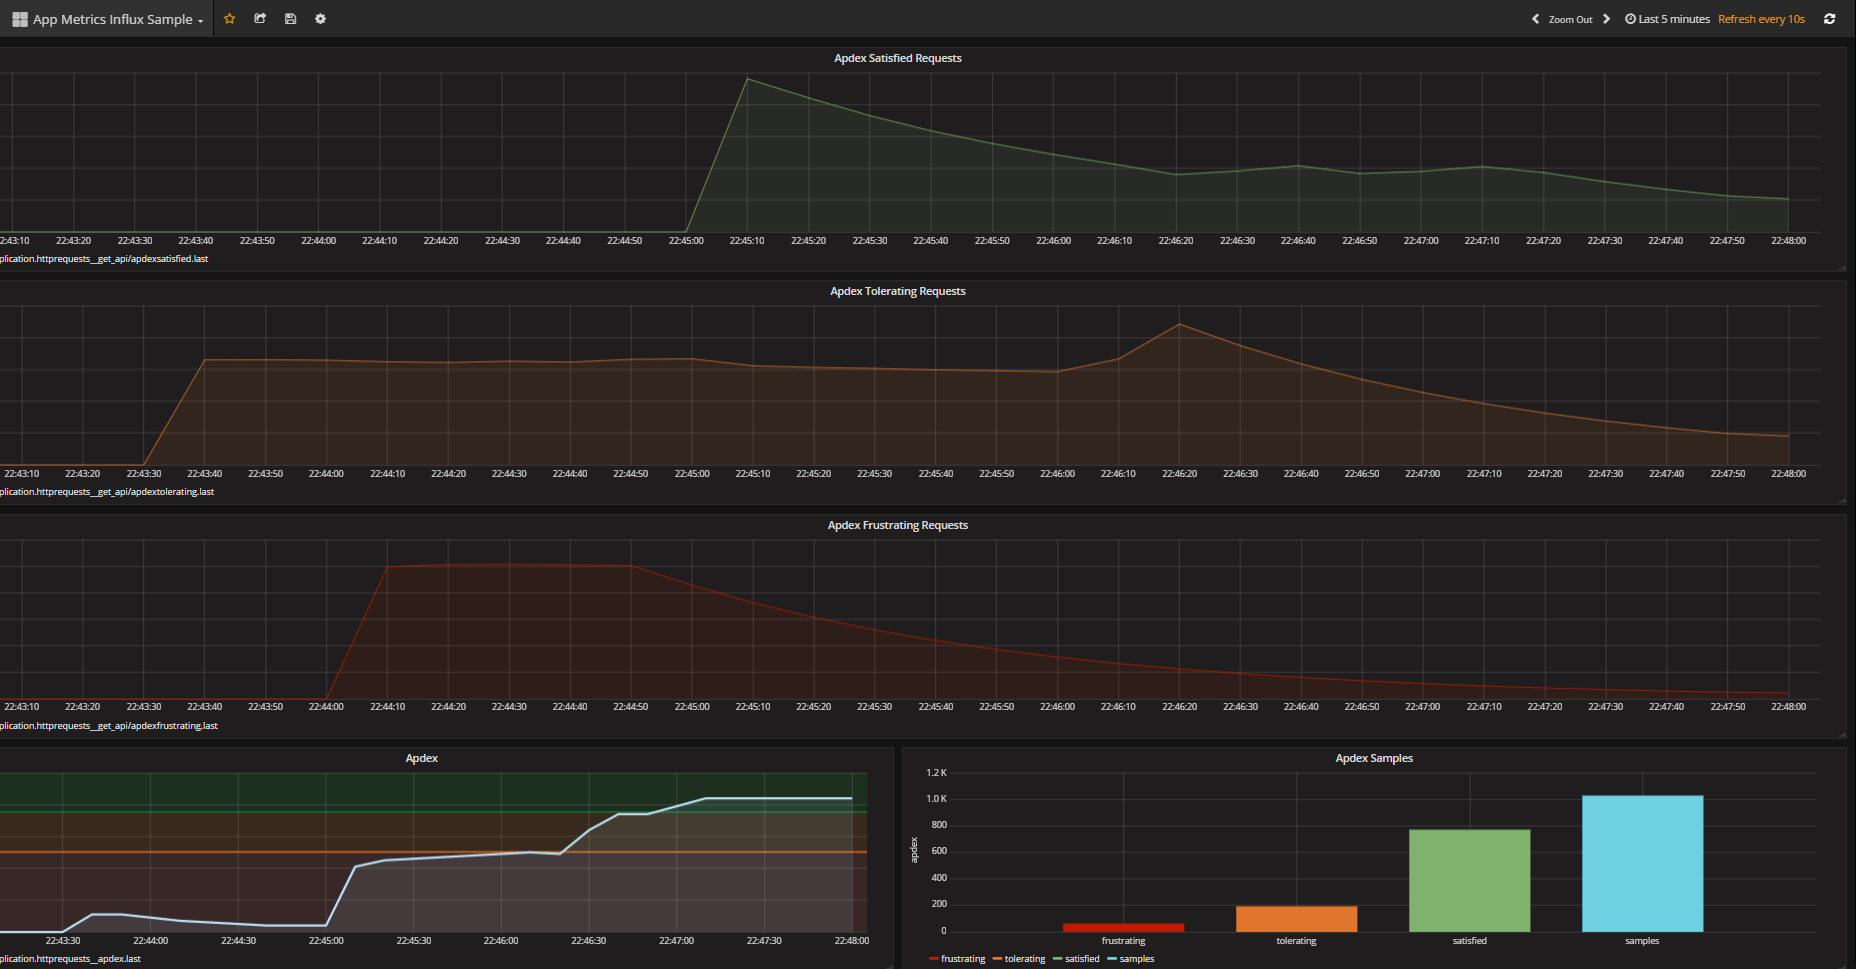 grafana apdex demo